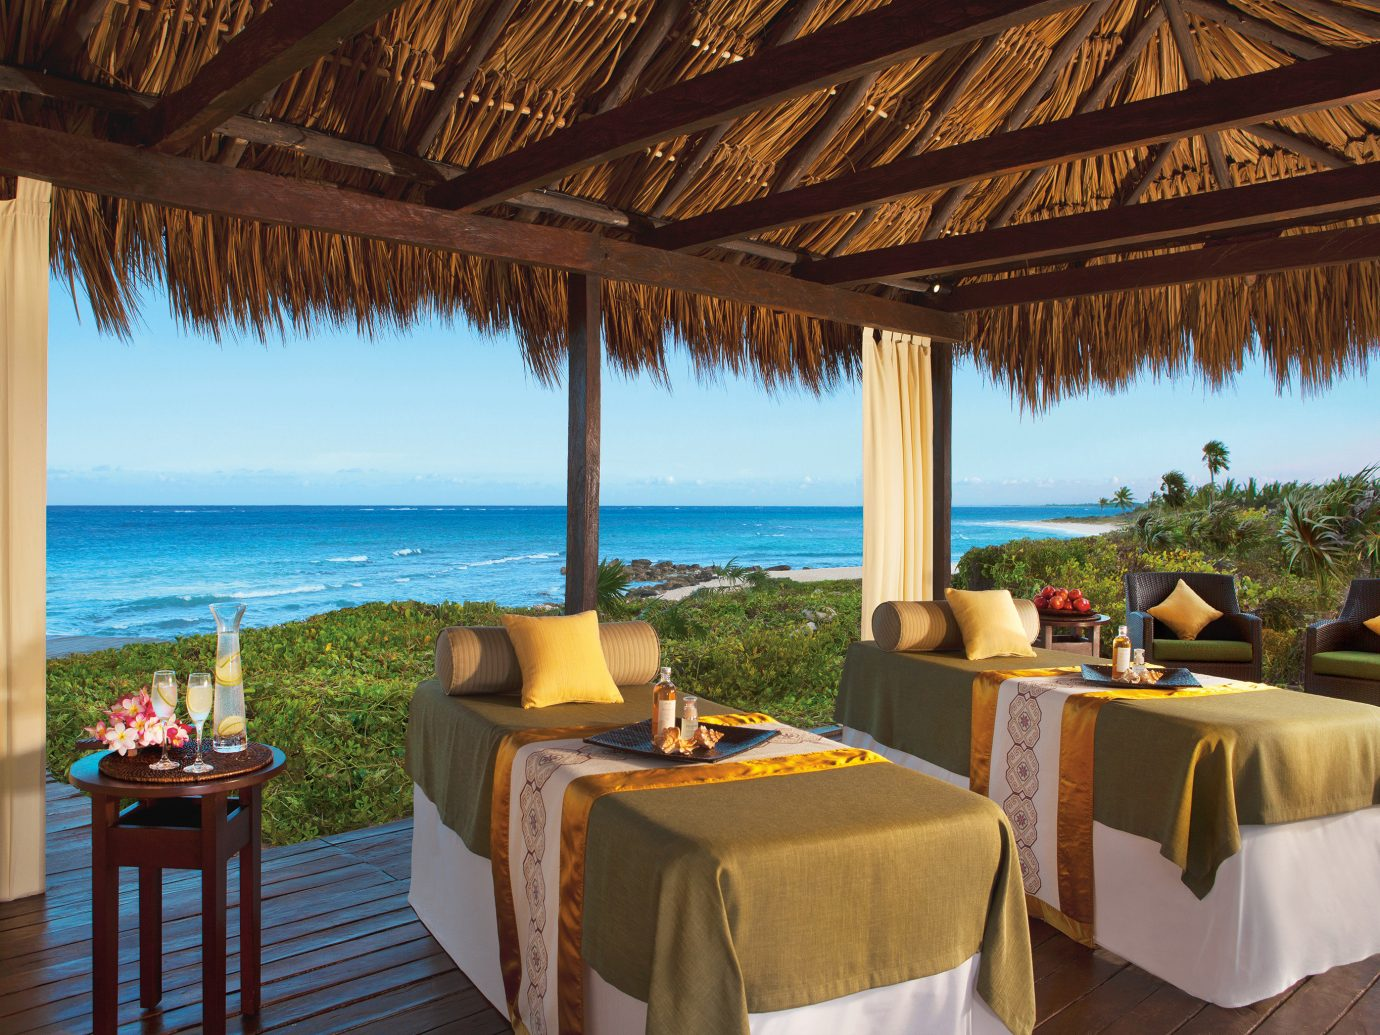 Beach Beachfront Hotels Romance Spa chair Resort property leisure ceiling vacation estate Villa restaurant caribbean hacienda cottage eco hotel hotel overlooking furniture several